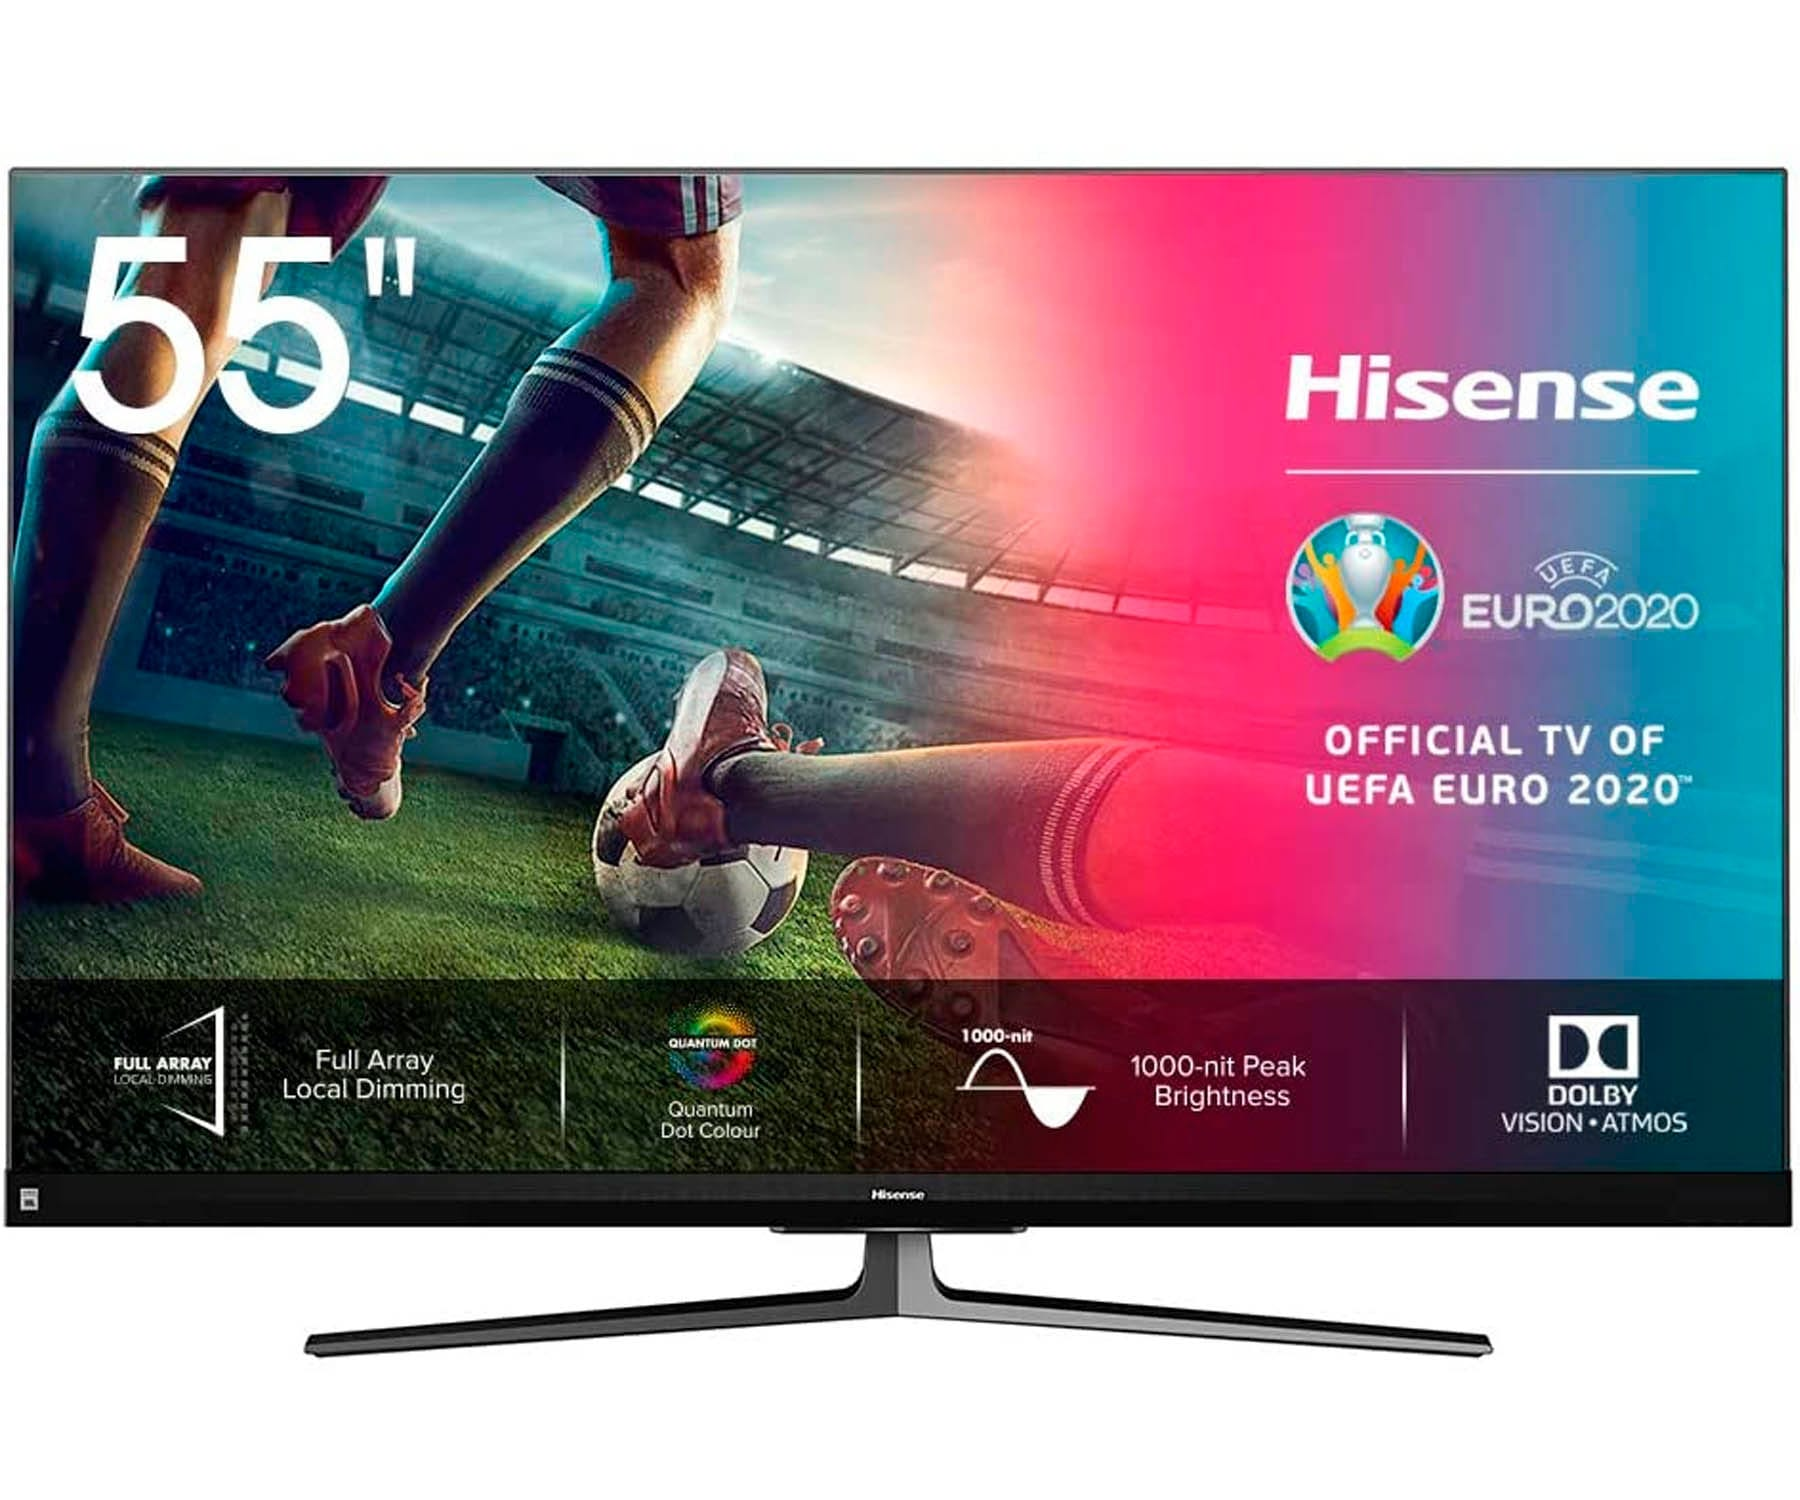 HISENSE H55U8QF TELEVISOR 55'' SMART TV ULED 4K UHD HDR 120Hz CI+ HDMI USB BLUETOOTH